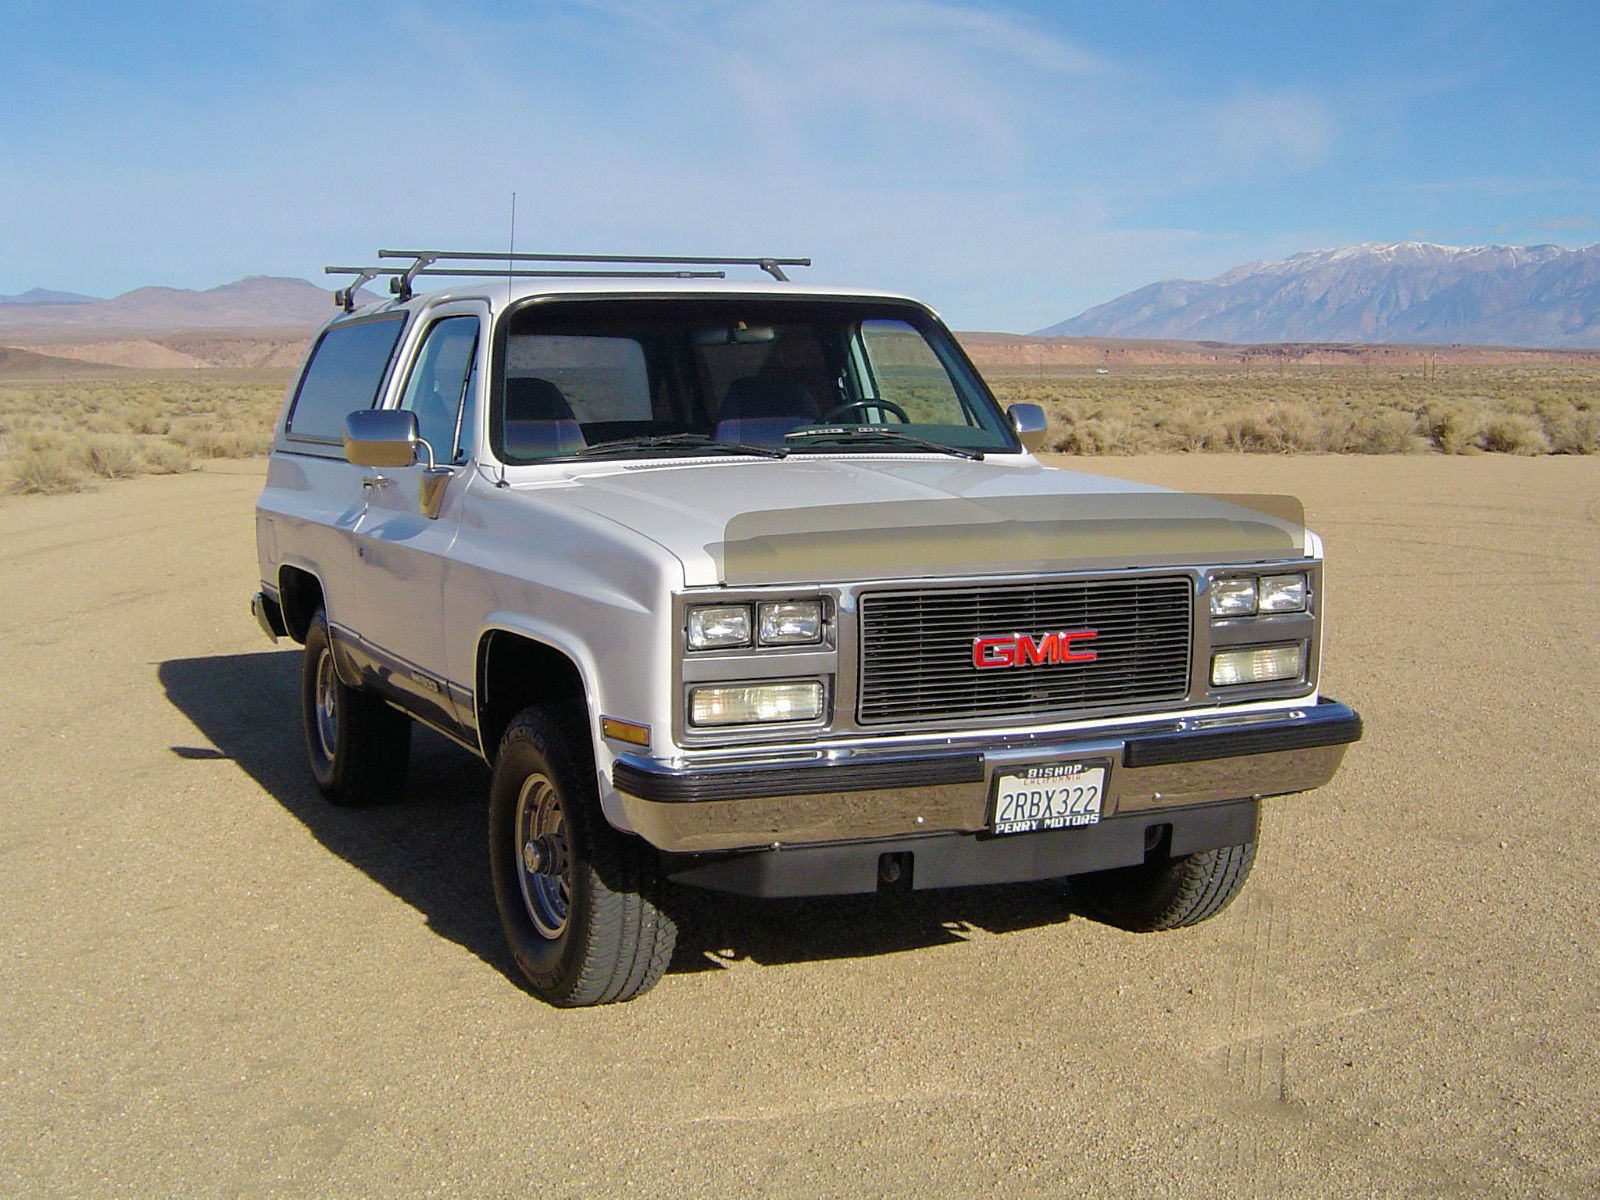 1989 Gmc Jimmy 4x4 California Truck Removable Top No Rust